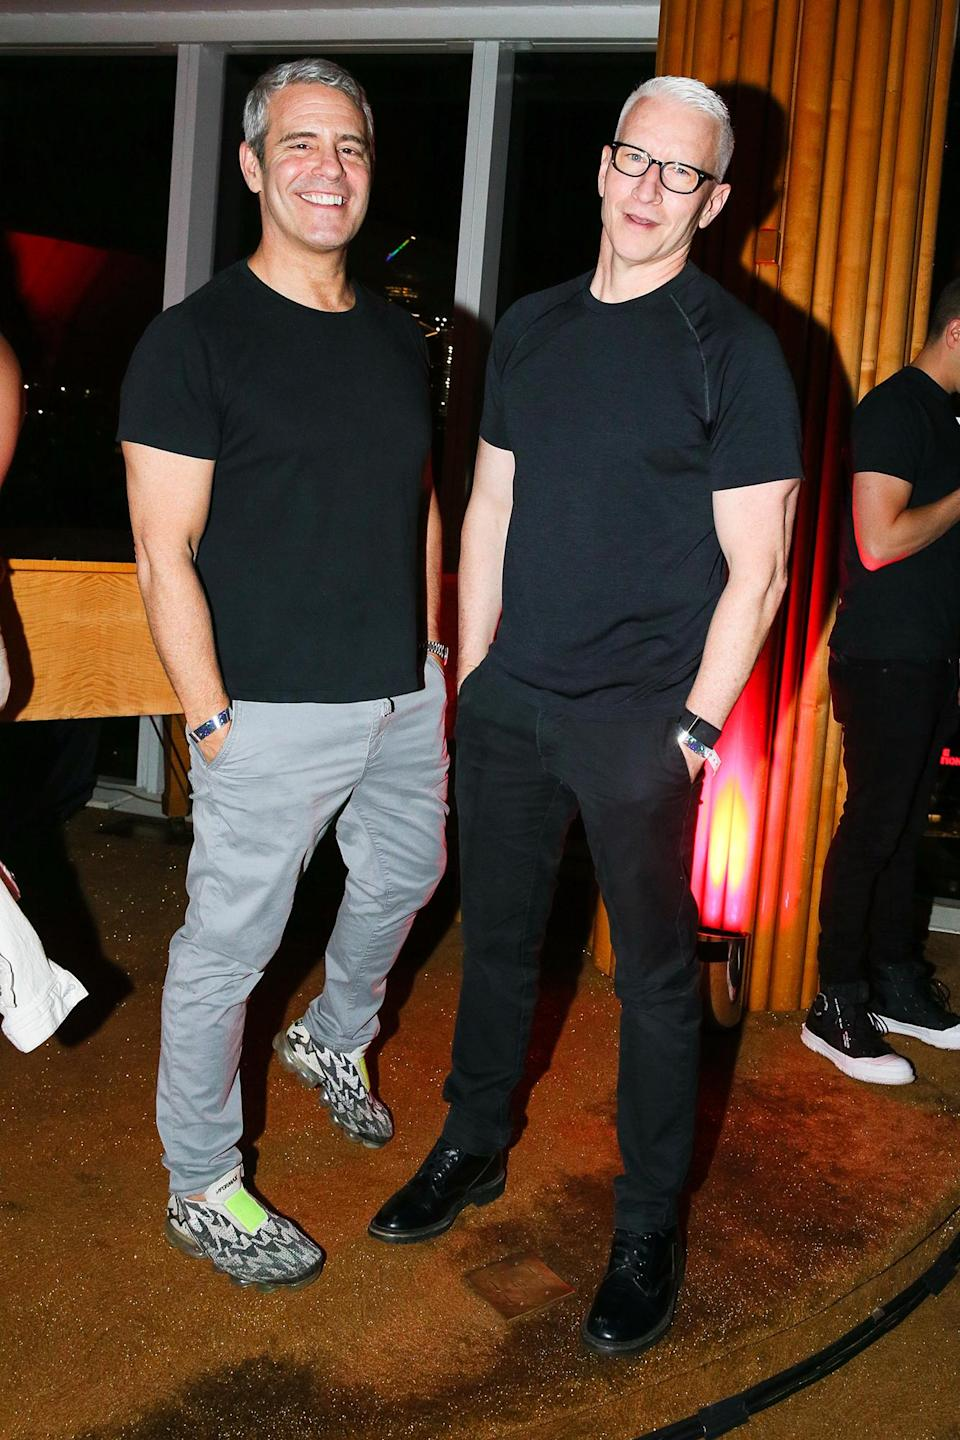 <p>Andy Cohen and Anderson Cooper strike matching poses at The Standard High Line's New York Pride Kick-Off Party on June 24 in N.Y.C. </p>